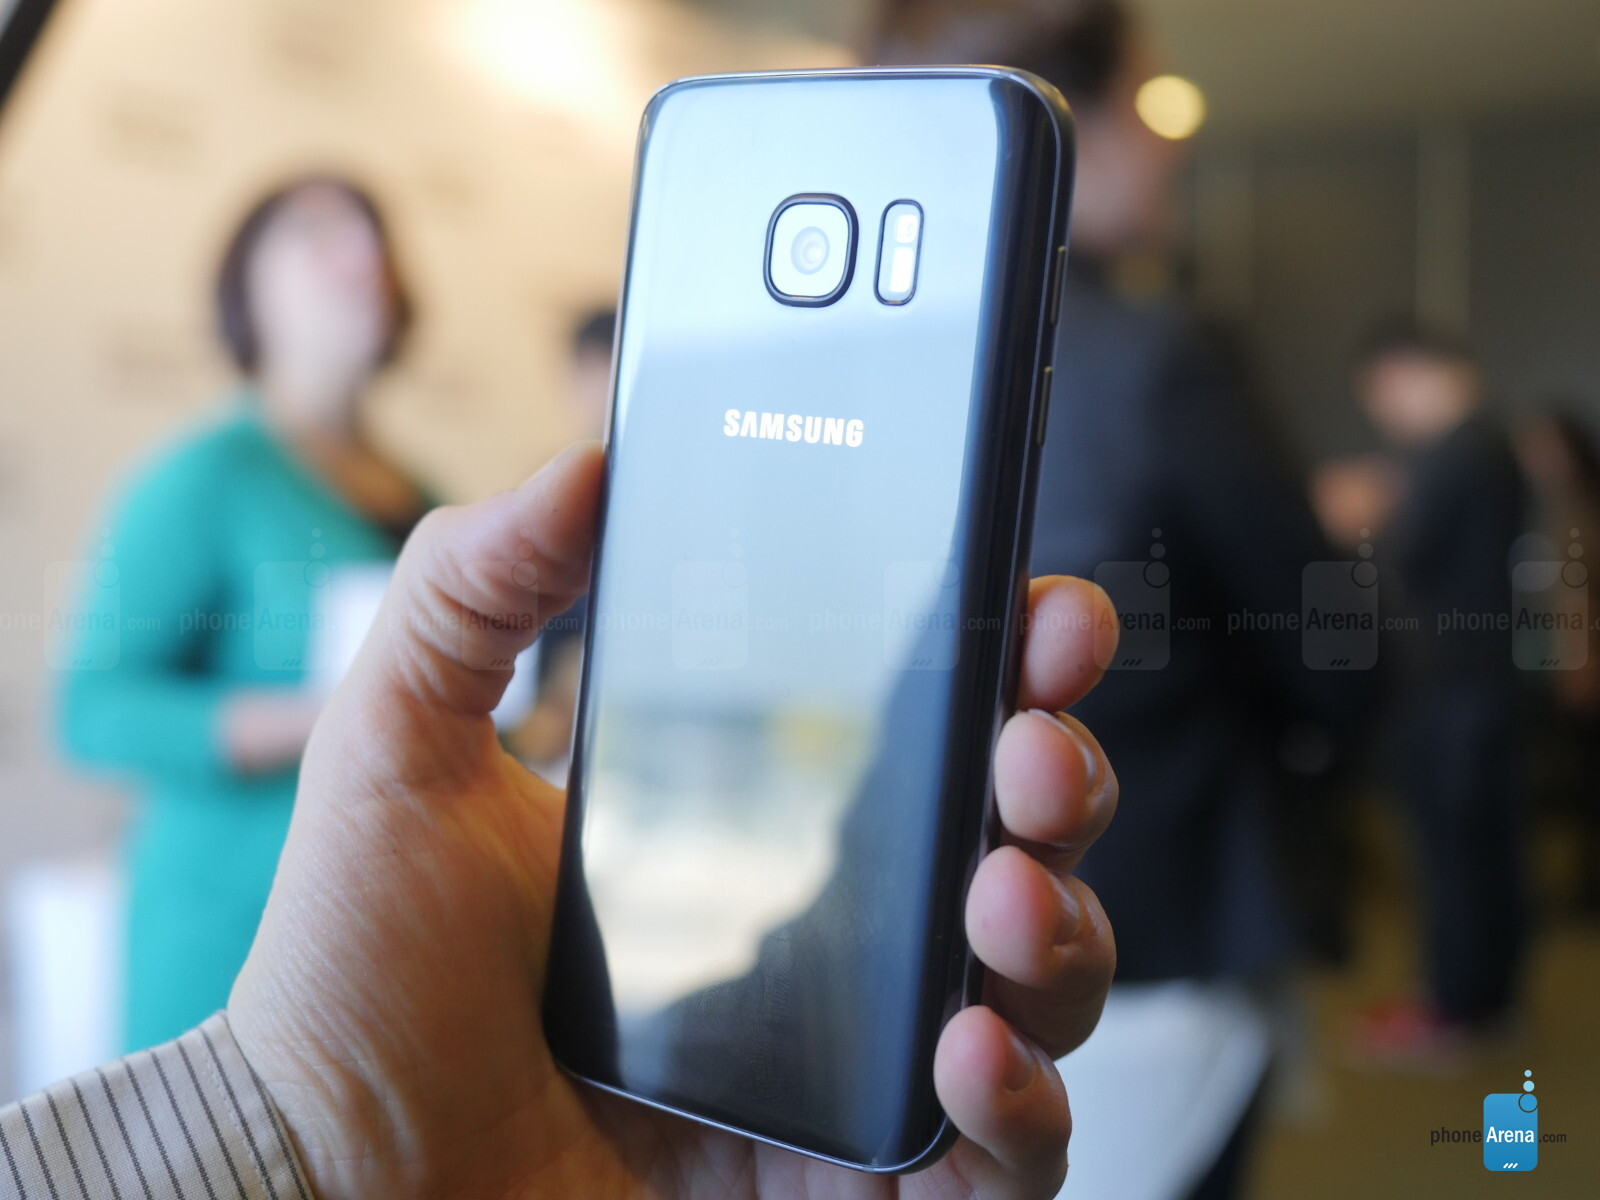 how to make galaxy s7 faster